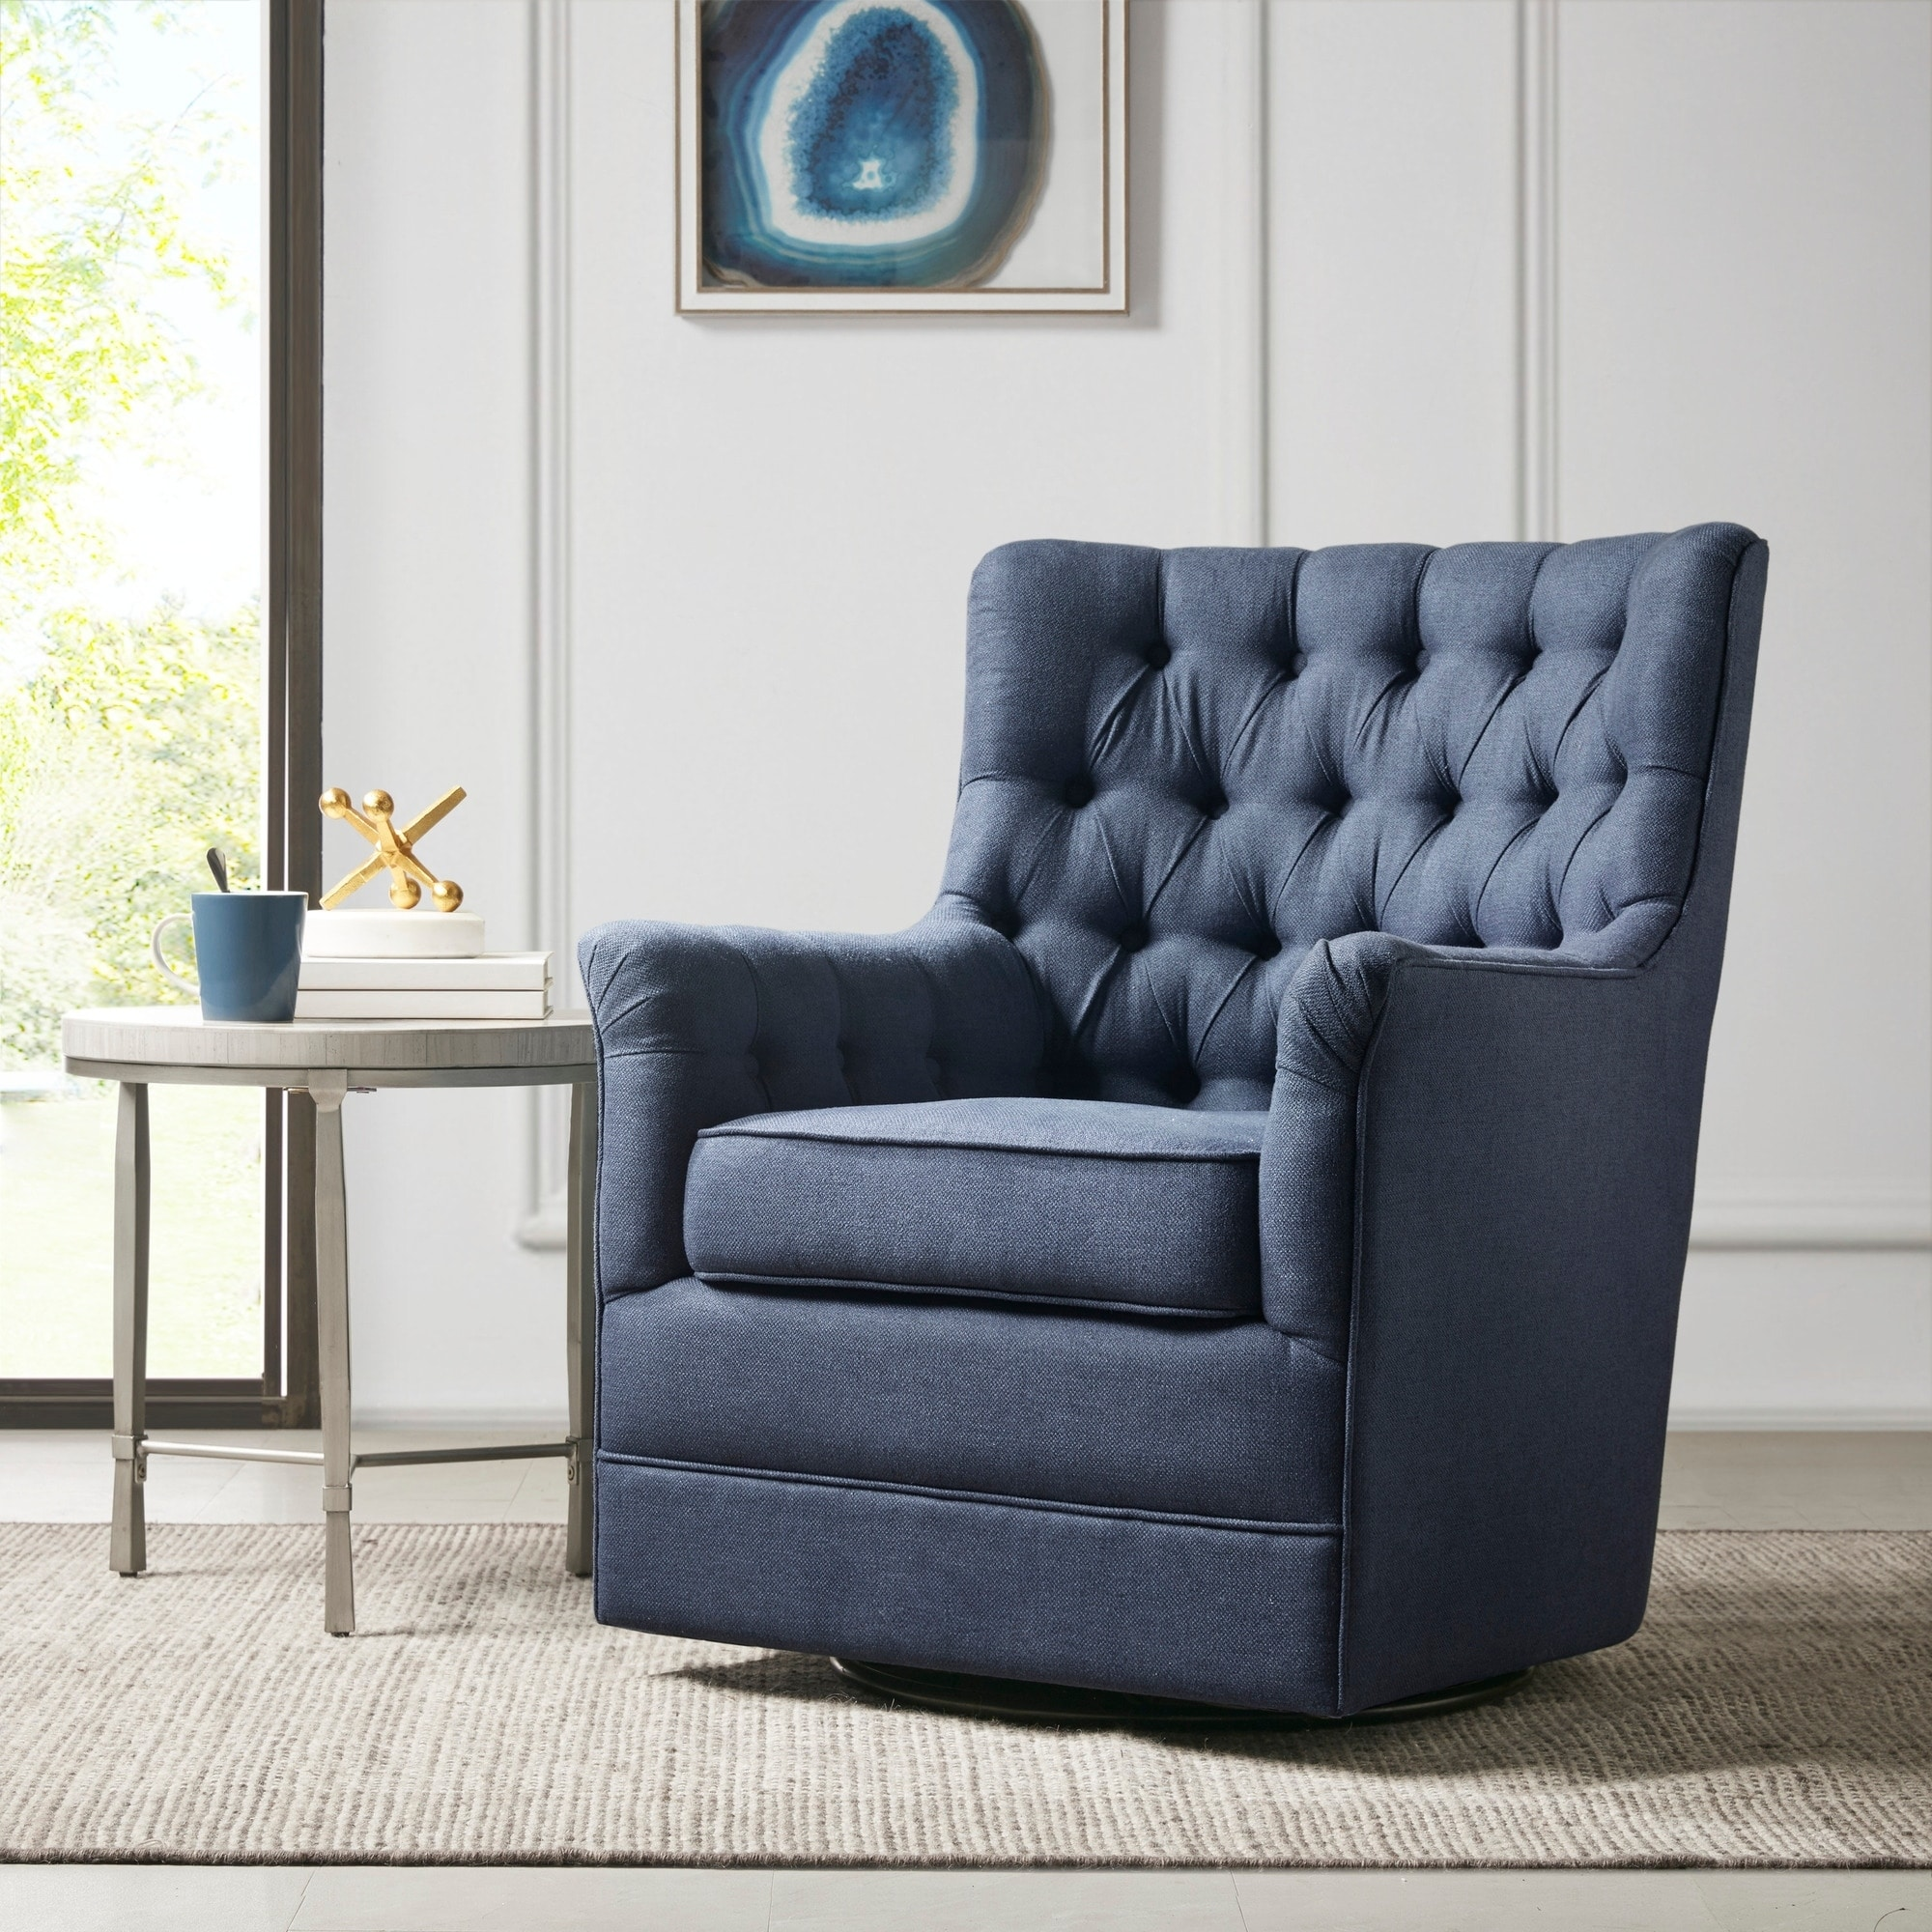 Shop Black Friday Deals On Madison Park Rae Blue Swivel Glider Chair Overstock 30677662